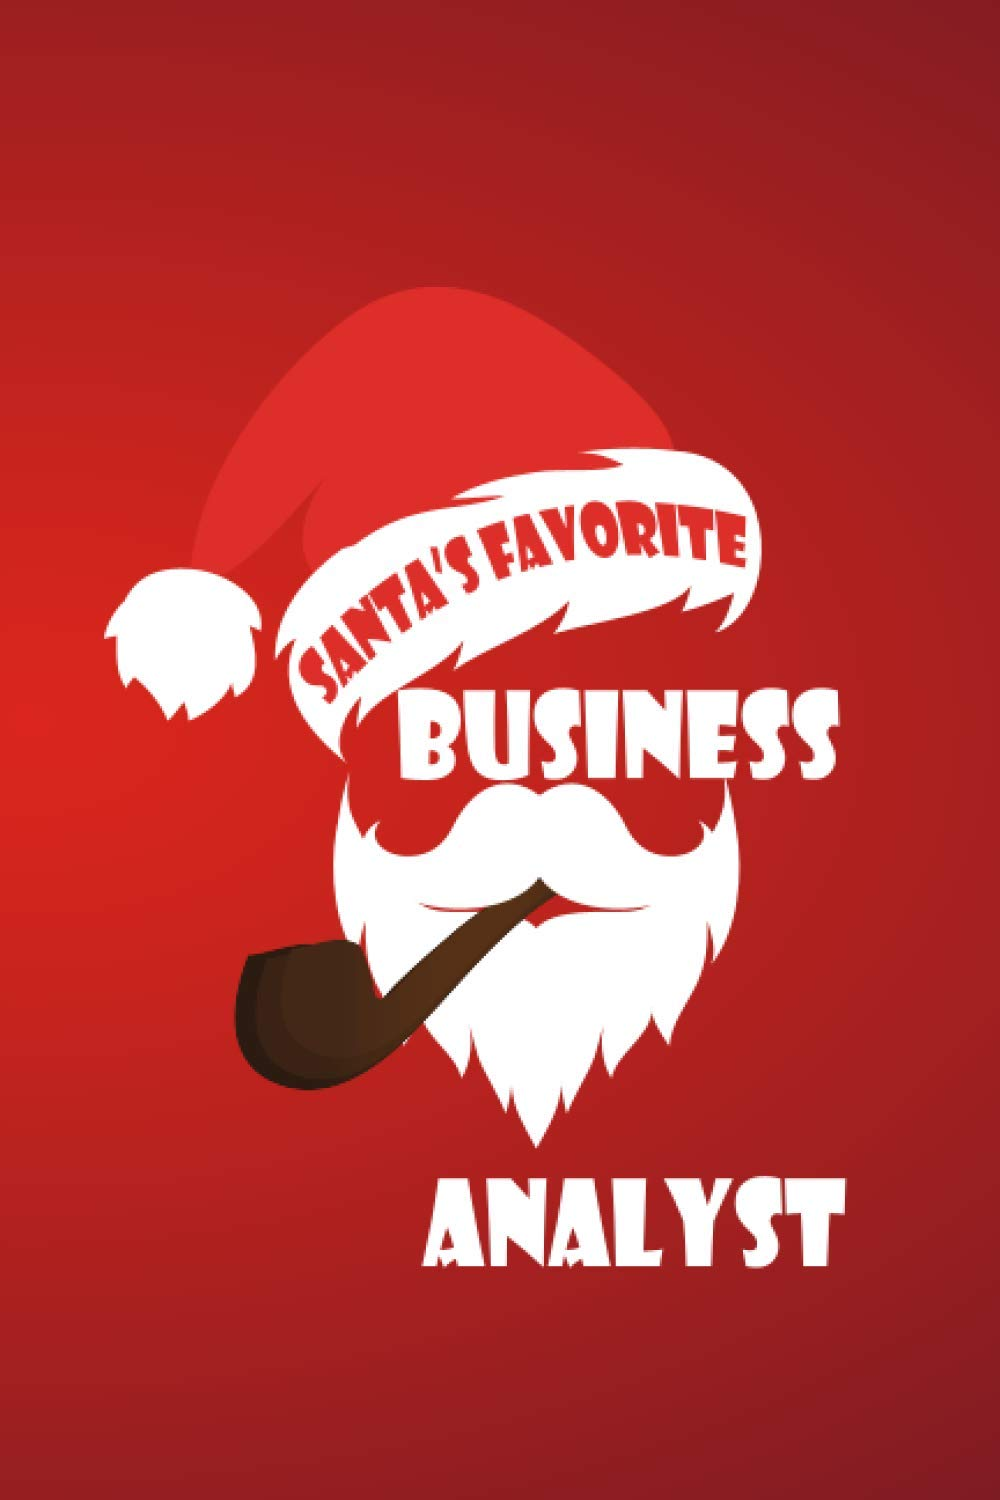 Santa S Favorite Business Analyst Business Analyst Notebook Journal Christmas Gifts For Business Analyst Encouragement And Appreciation Gifts Ideas For Business Analyst Publishing Christmas Gfts 9798689706078 Amazon Com Books